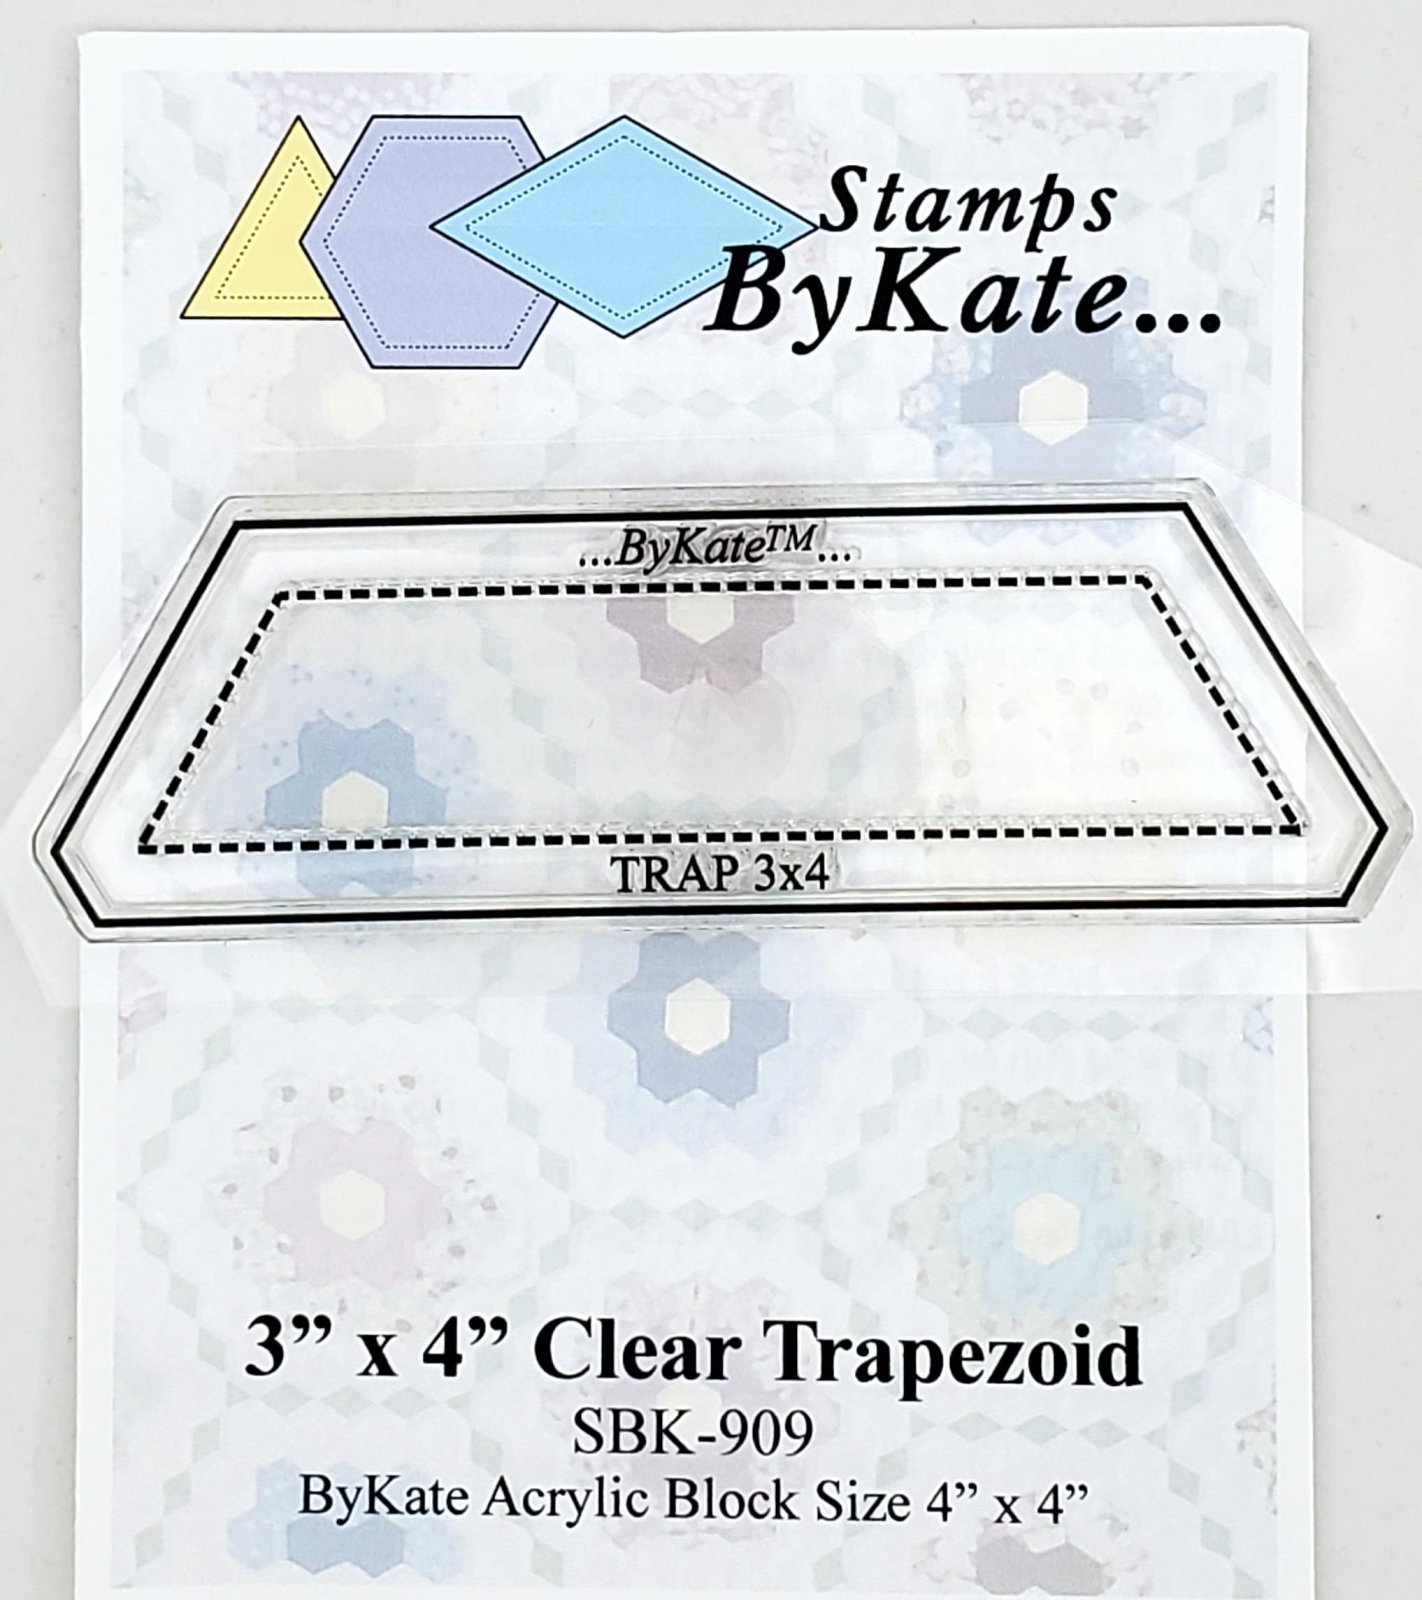 Clear Trapezoid Stamps